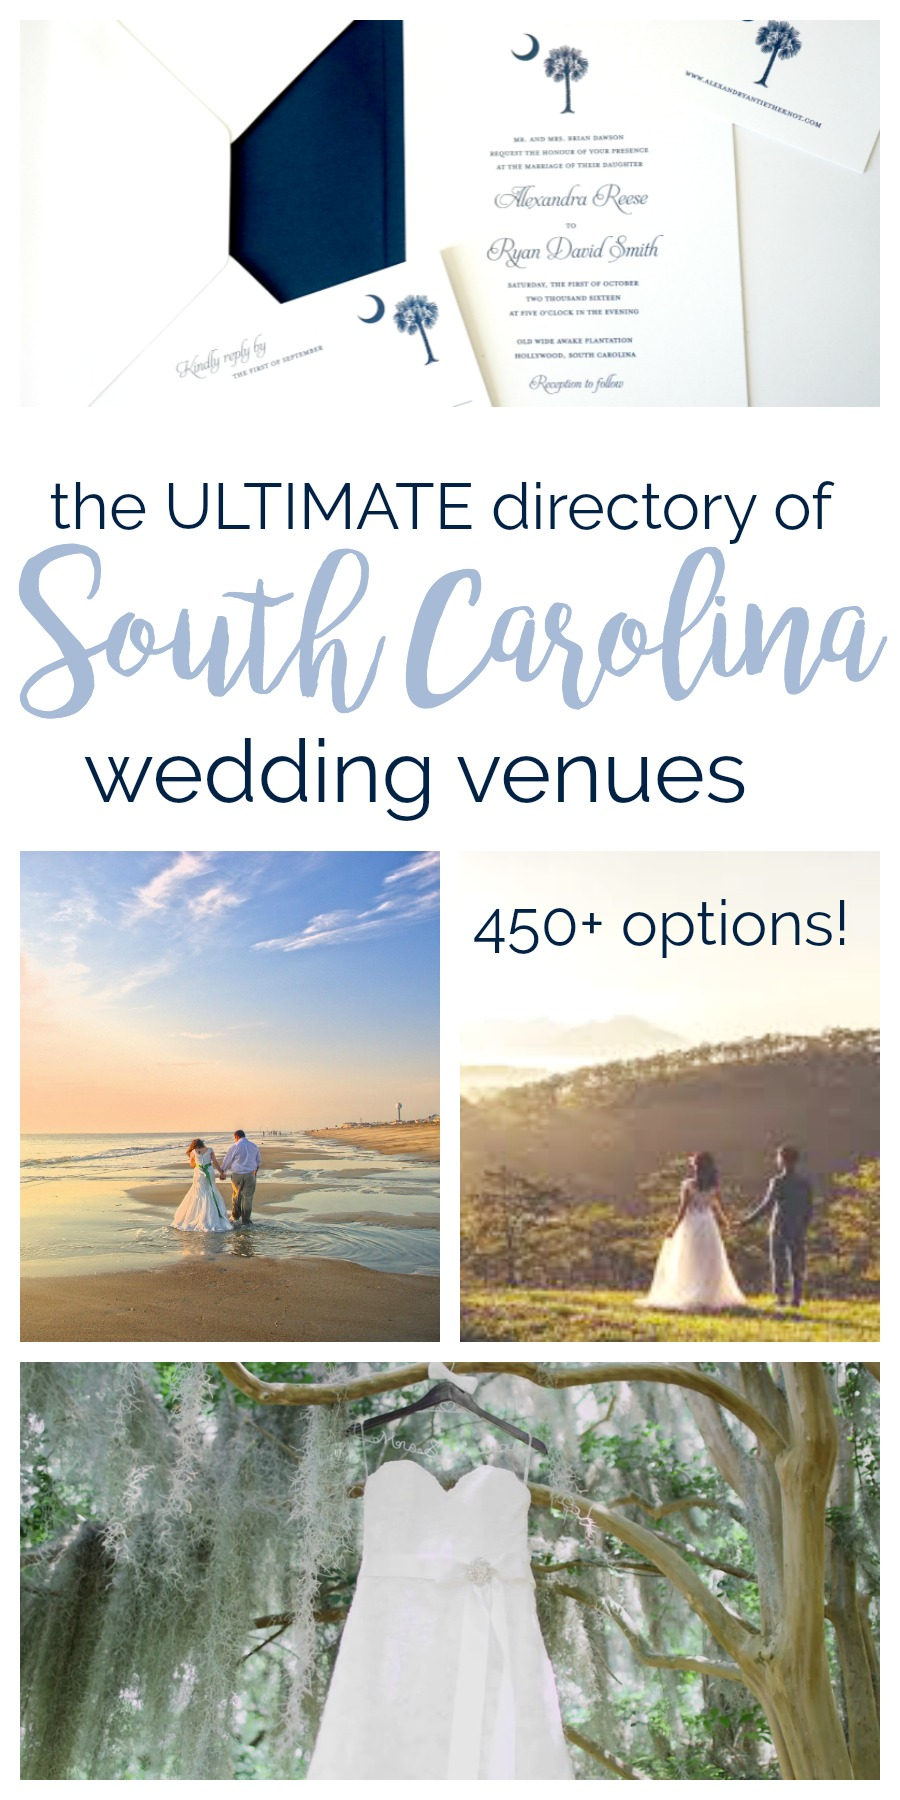 The Ultimate Directory of South Carolina Wedding Venues | Palmetto State Weddings